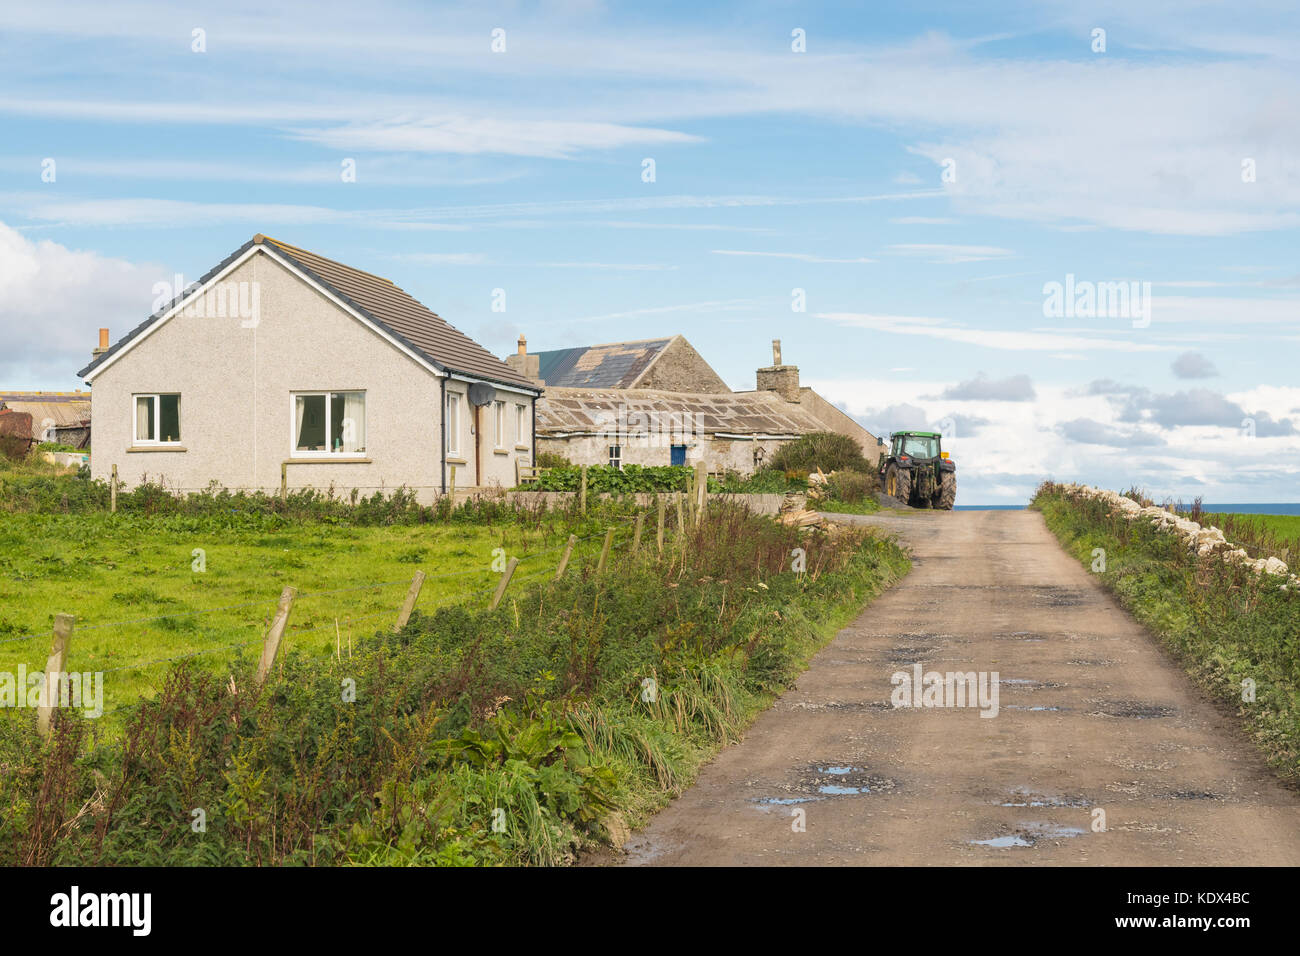 Orkney housing - old and new houses on Westray - modern bungalow, and old stone house with large stone slate roof - Stock Image